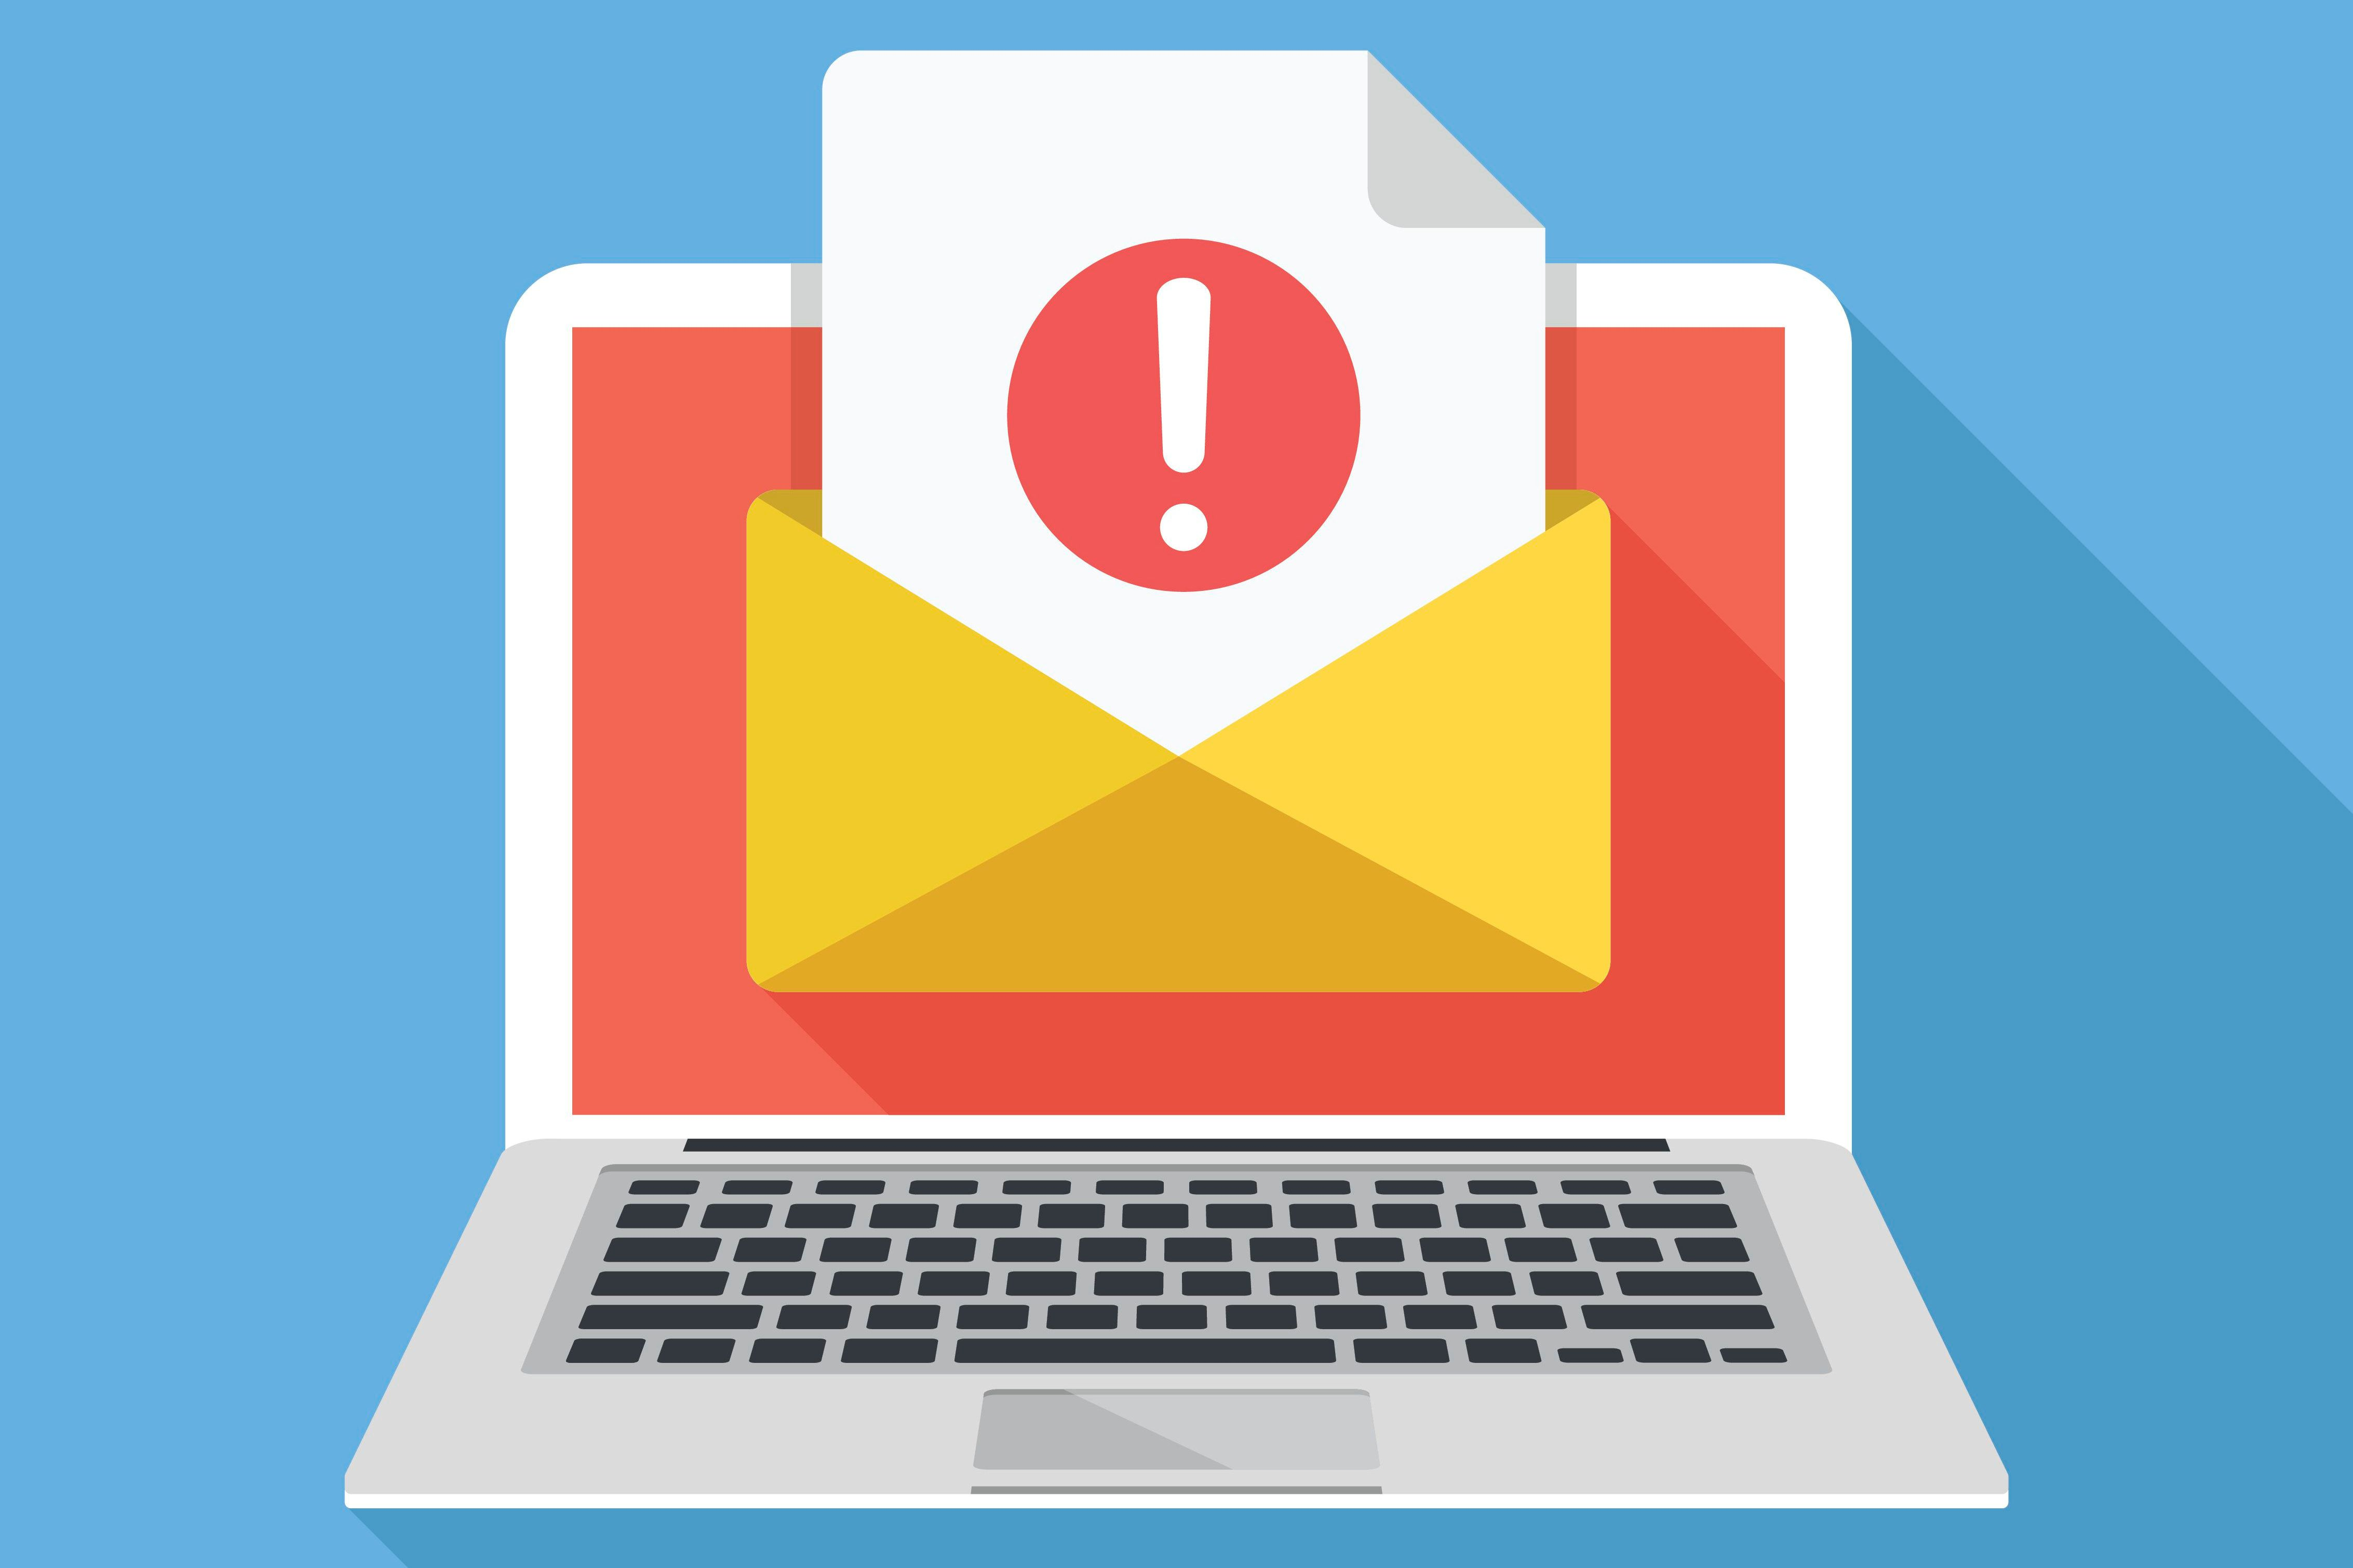 How to Stop Hotmail From Marking Emails as Spam